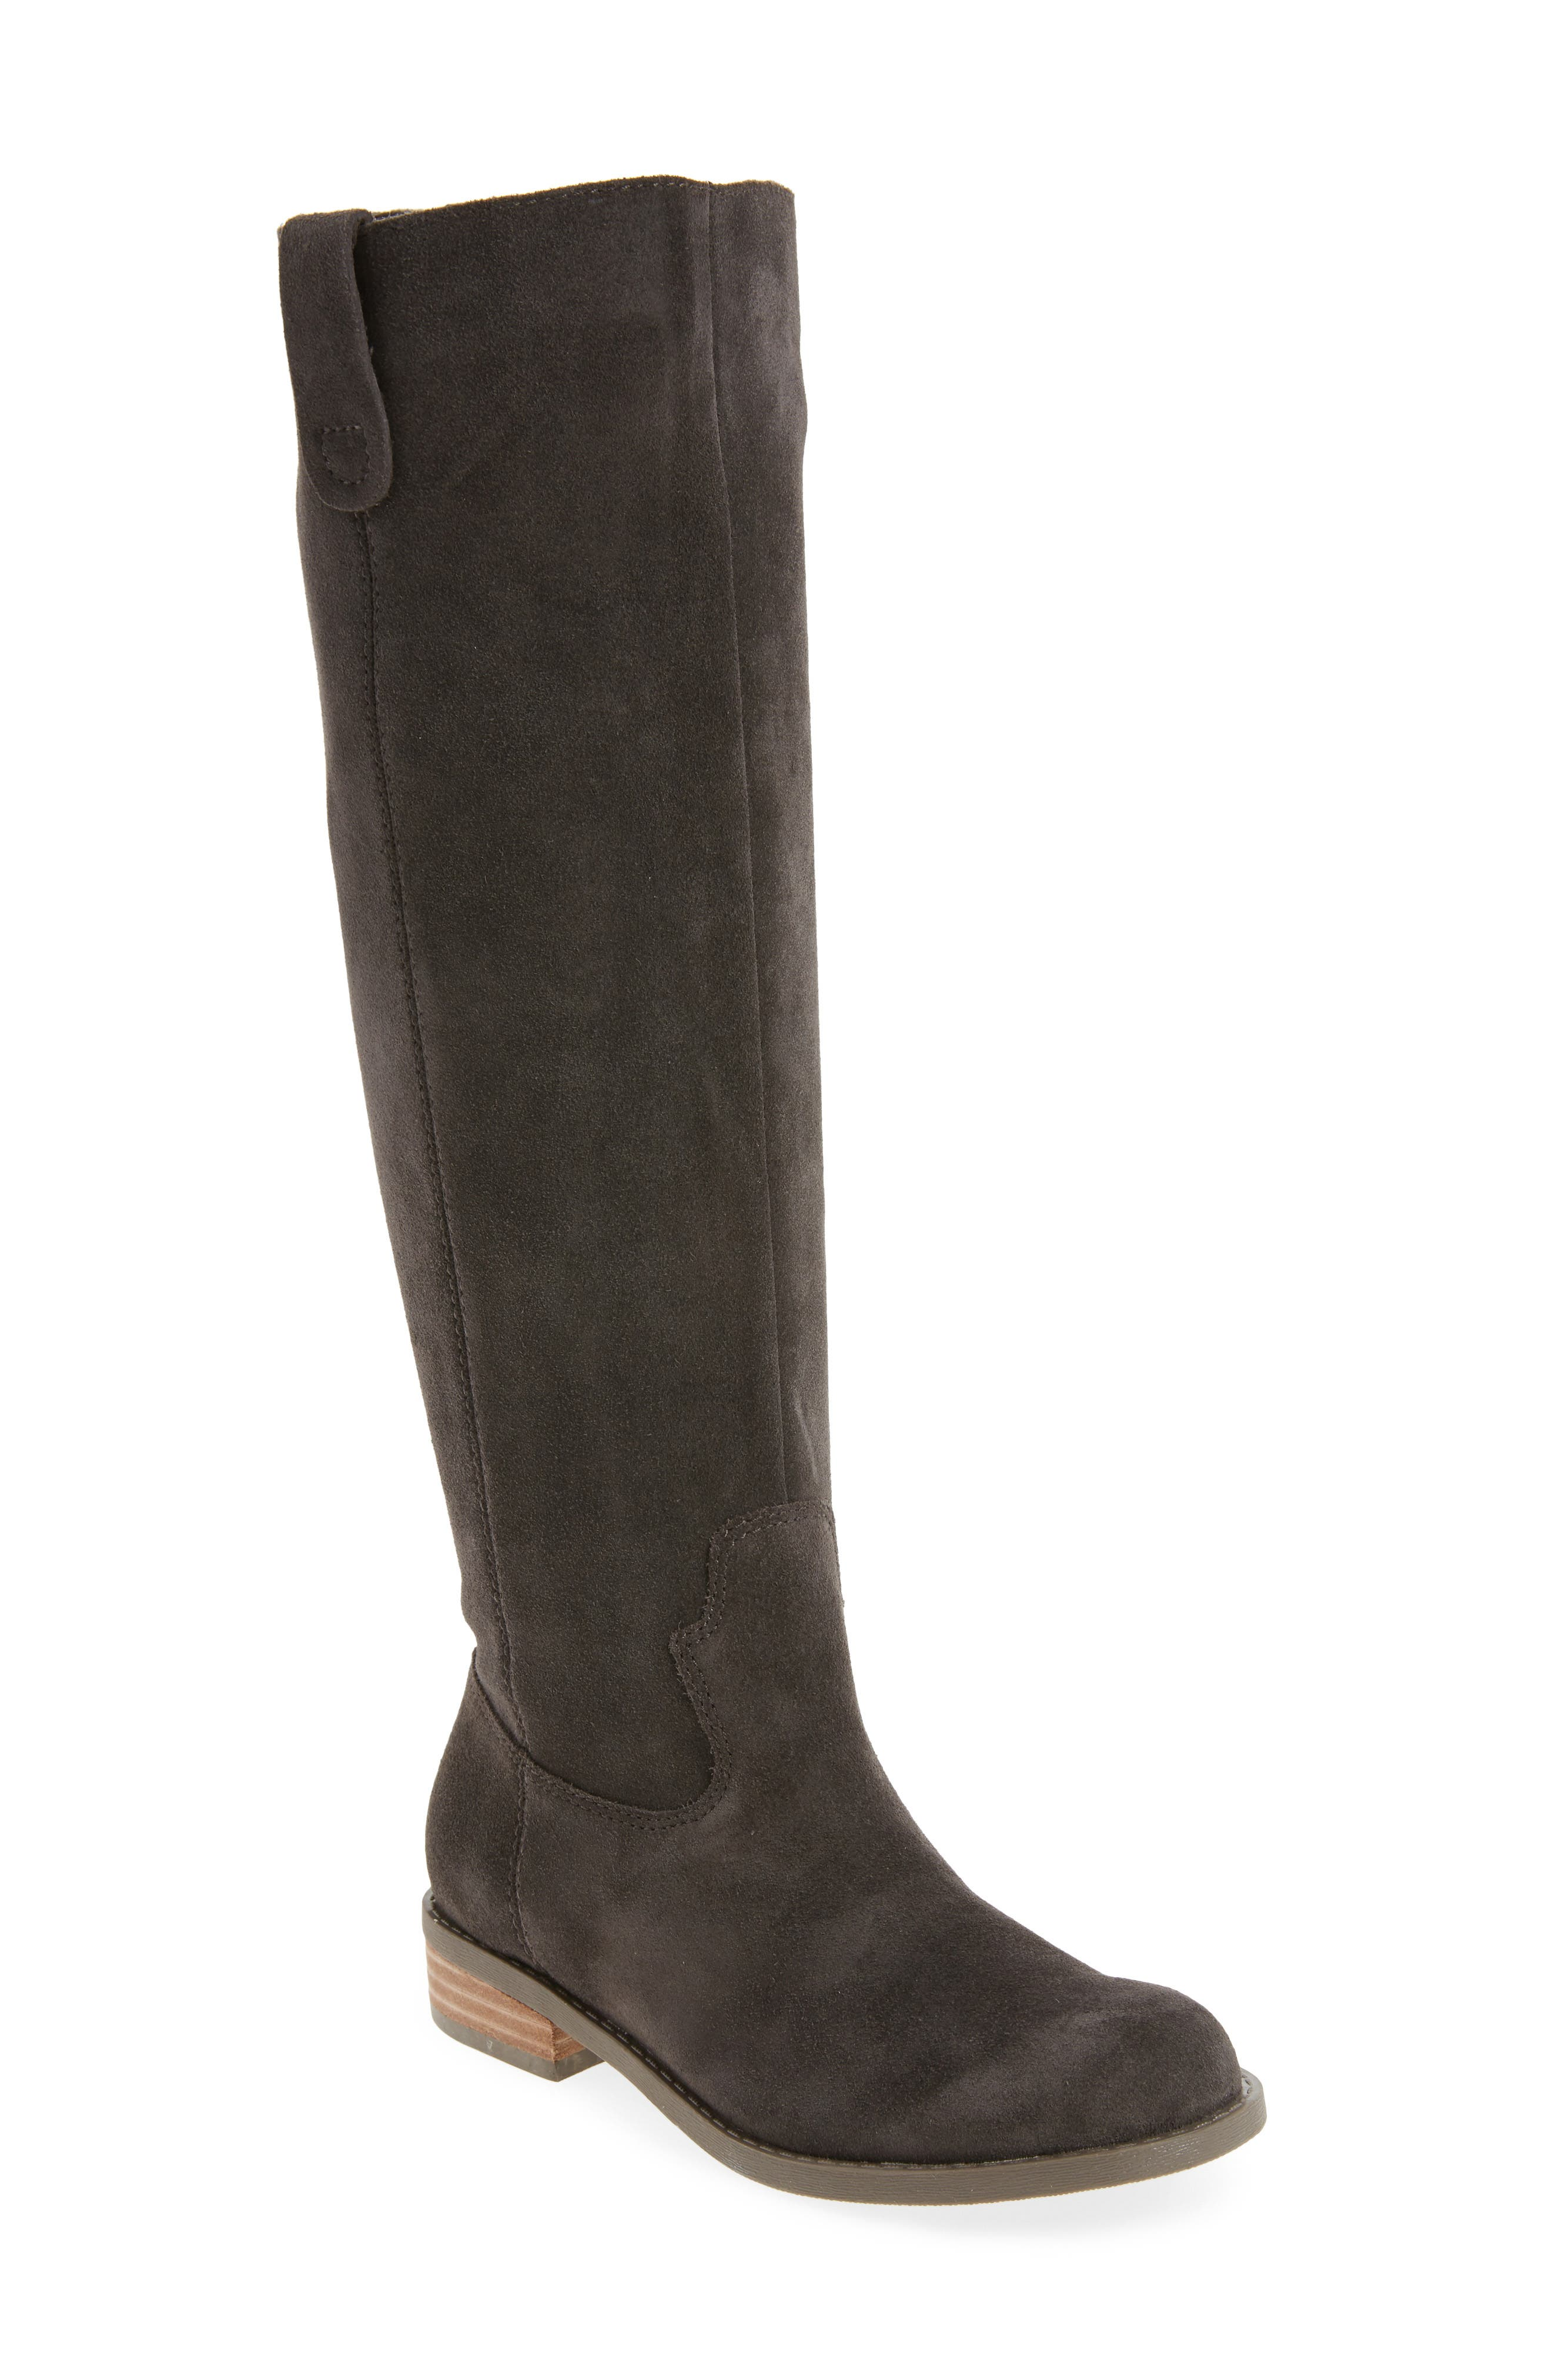 Alternate Image 1 Selected - Sole Society Hawn Knee High Boot (Women)